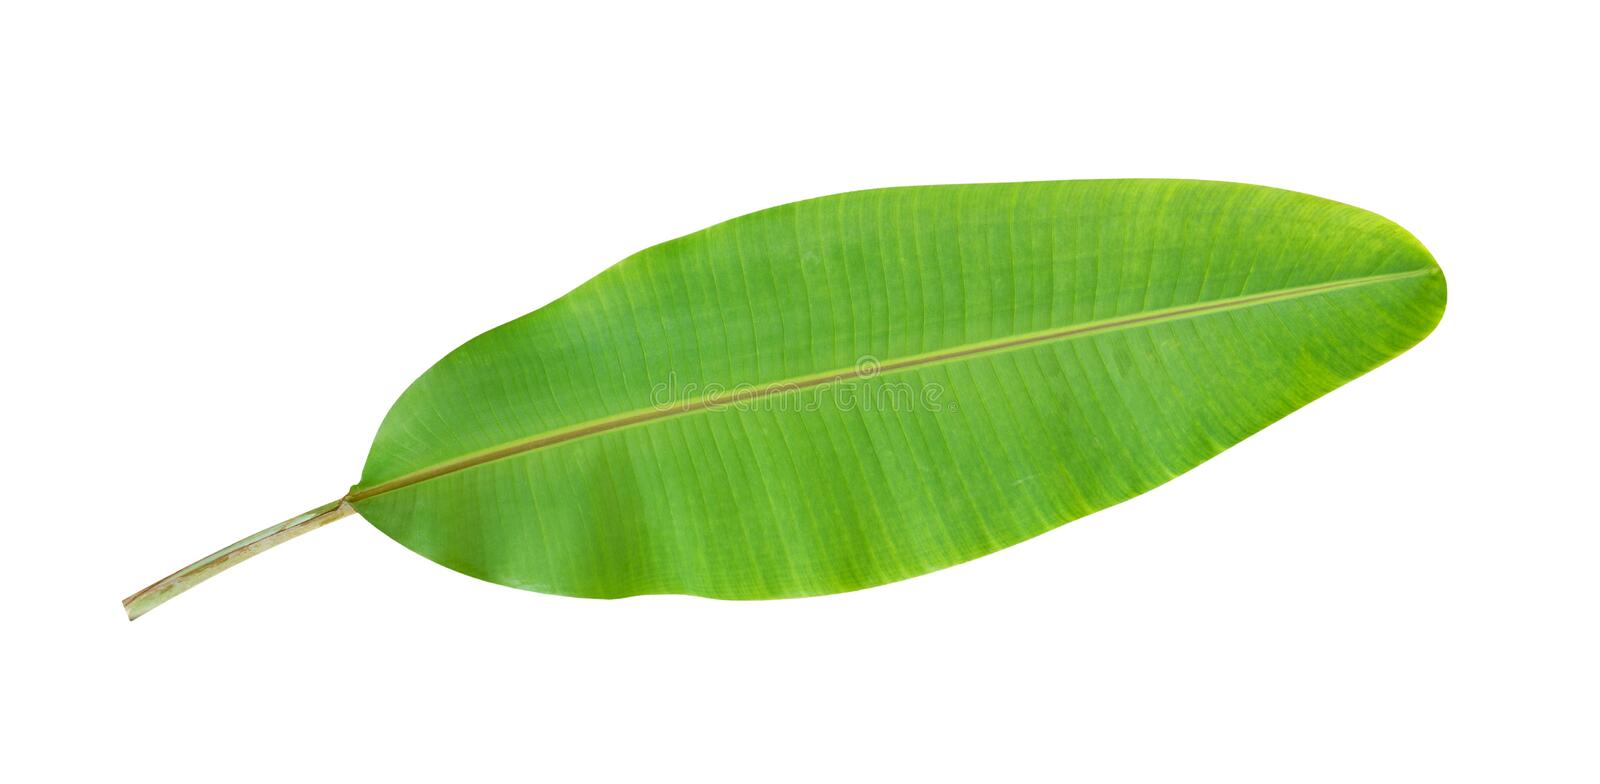 Fresh green tropical banana leaf isolated on white background, path. Fresh green tropical banana leaf isolated on white background, clipping path included stock photo